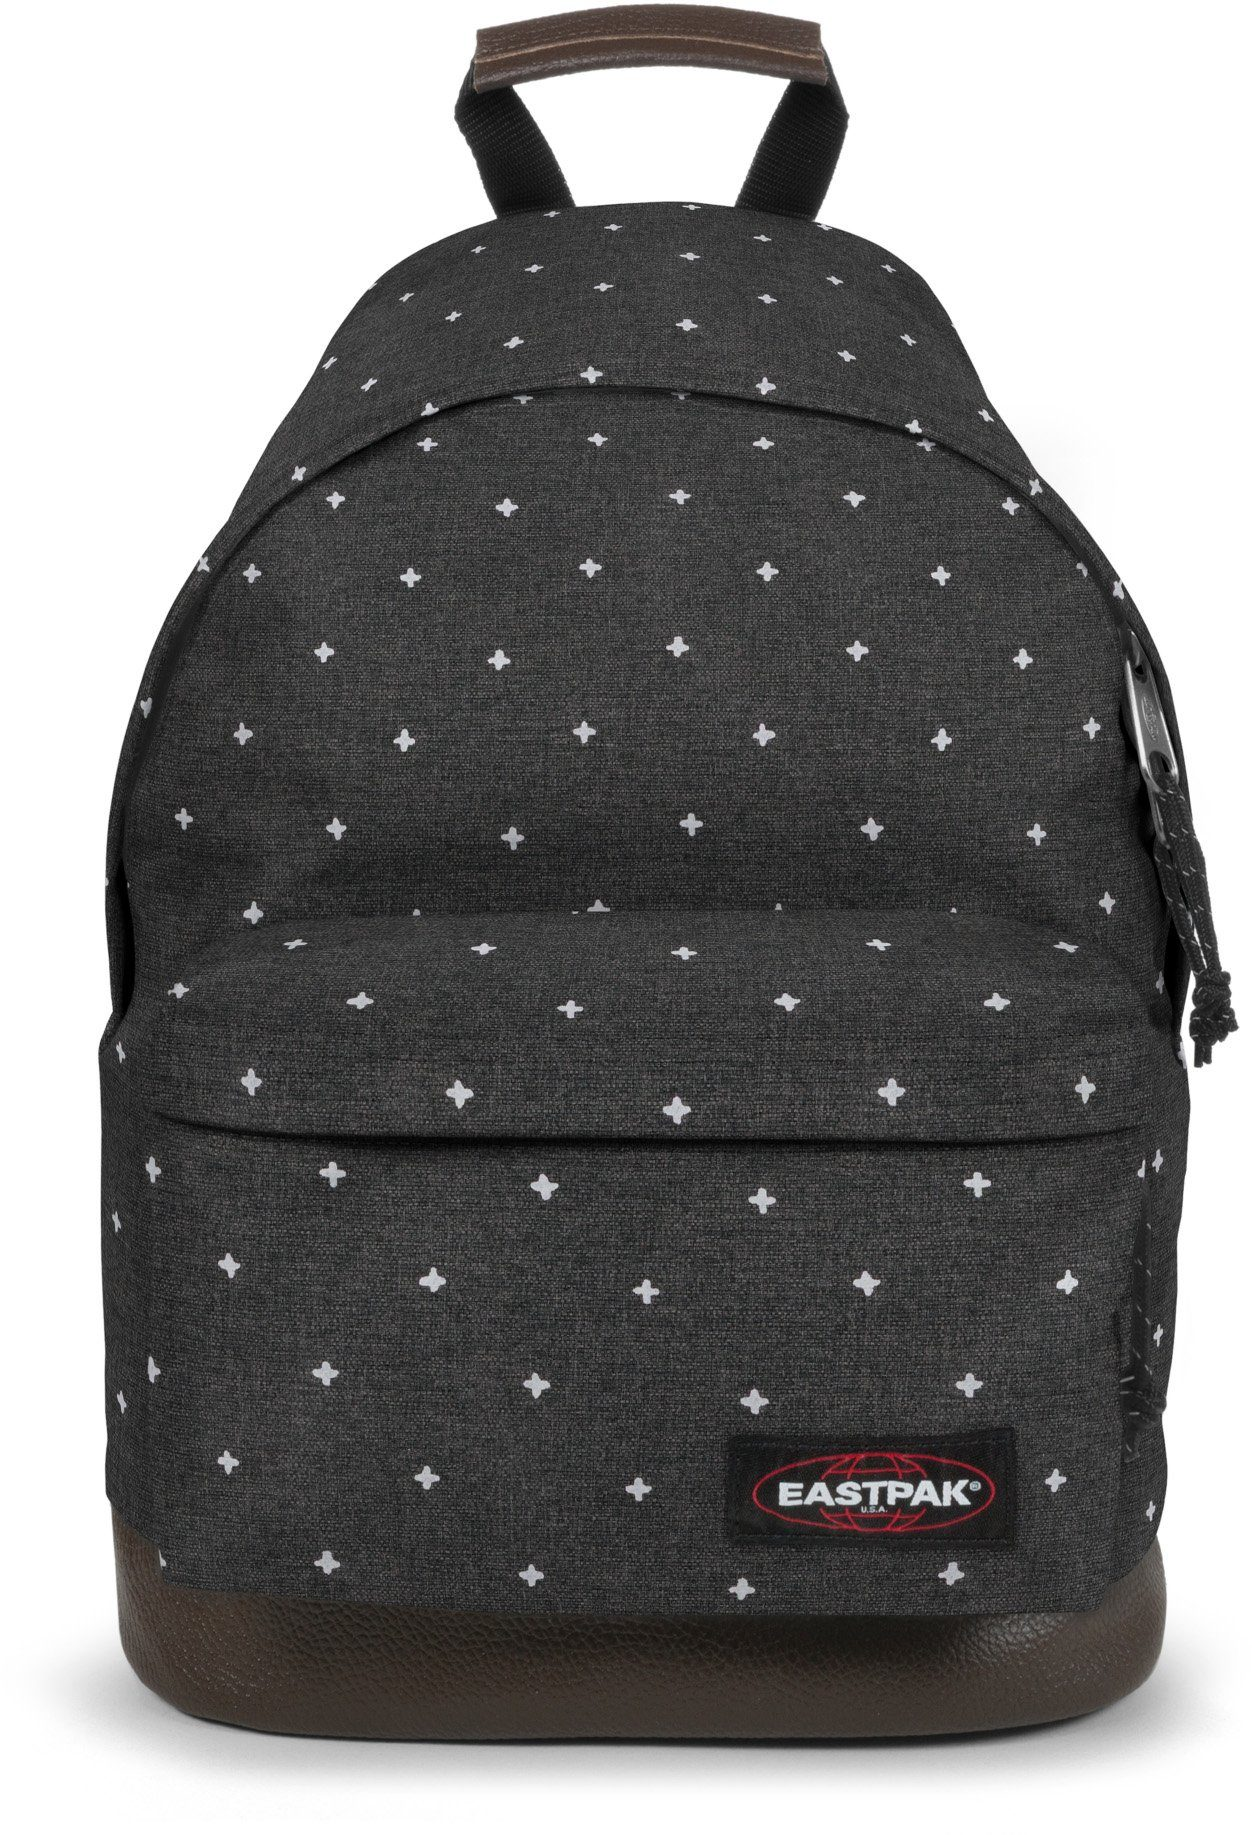 Eastpak Rucksack mit Laptopfach, »WYOMING white crosses«